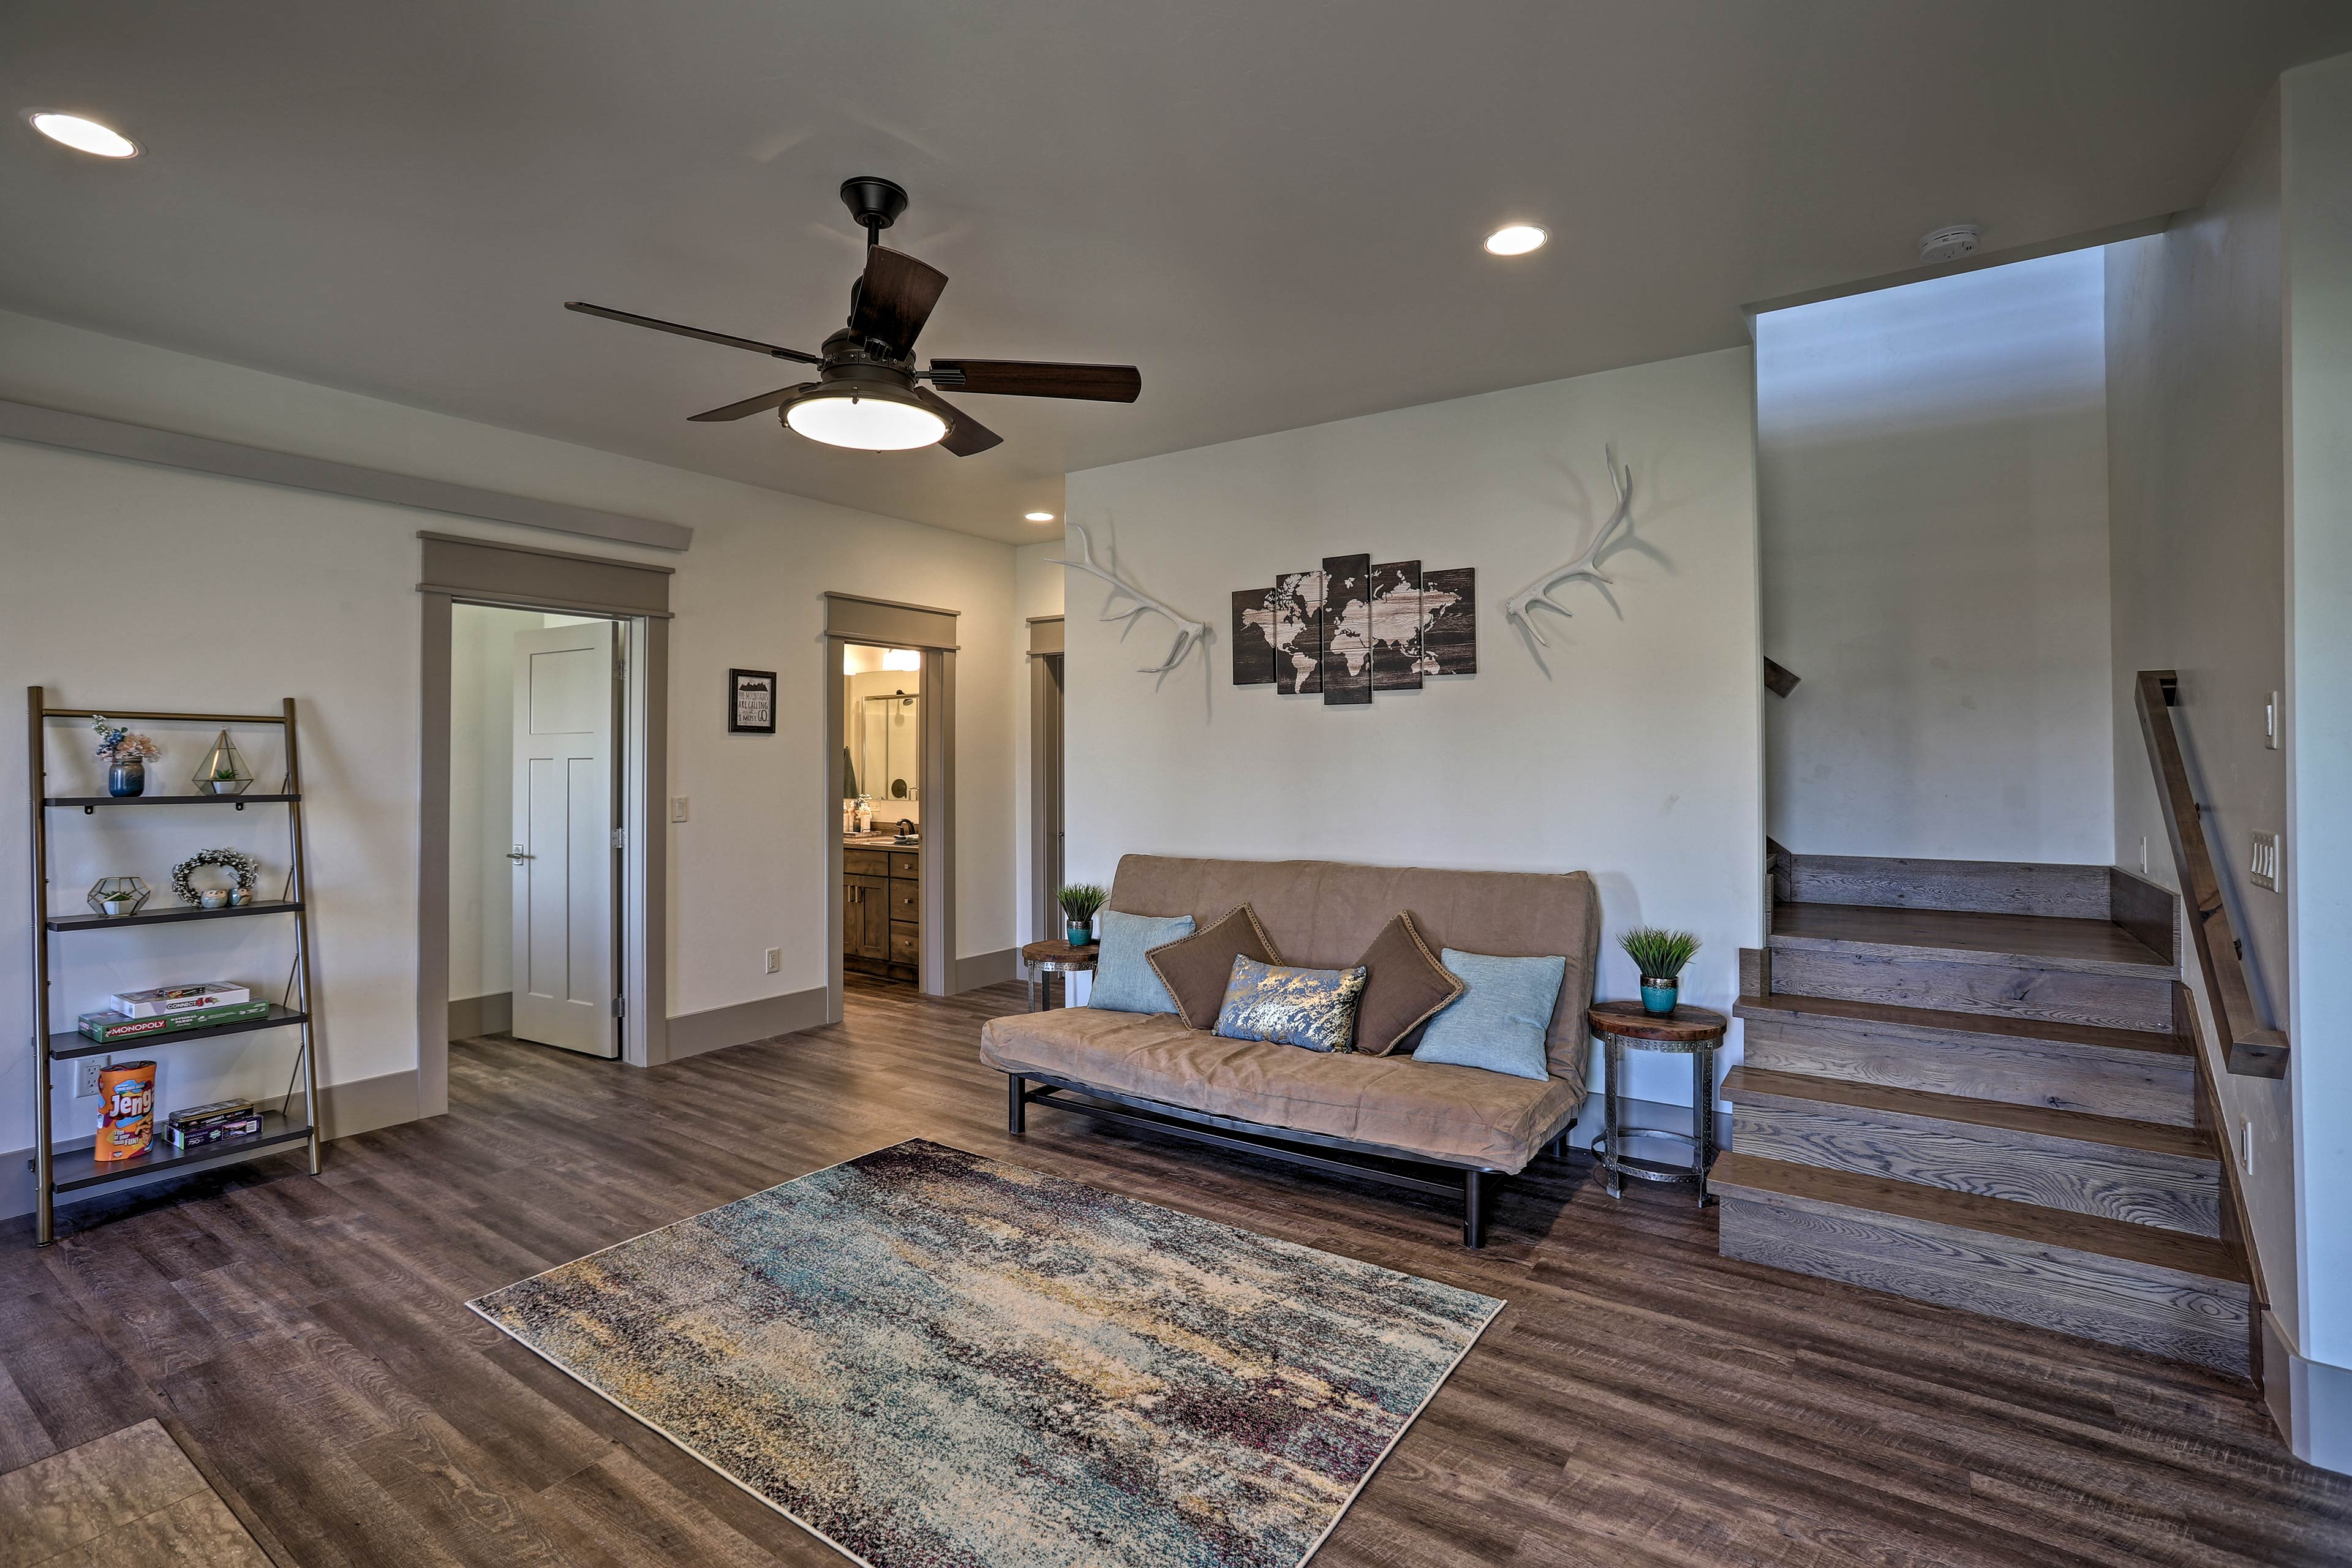 The downstairs family room includes a sleeper sofa to sleep 2 additional people.